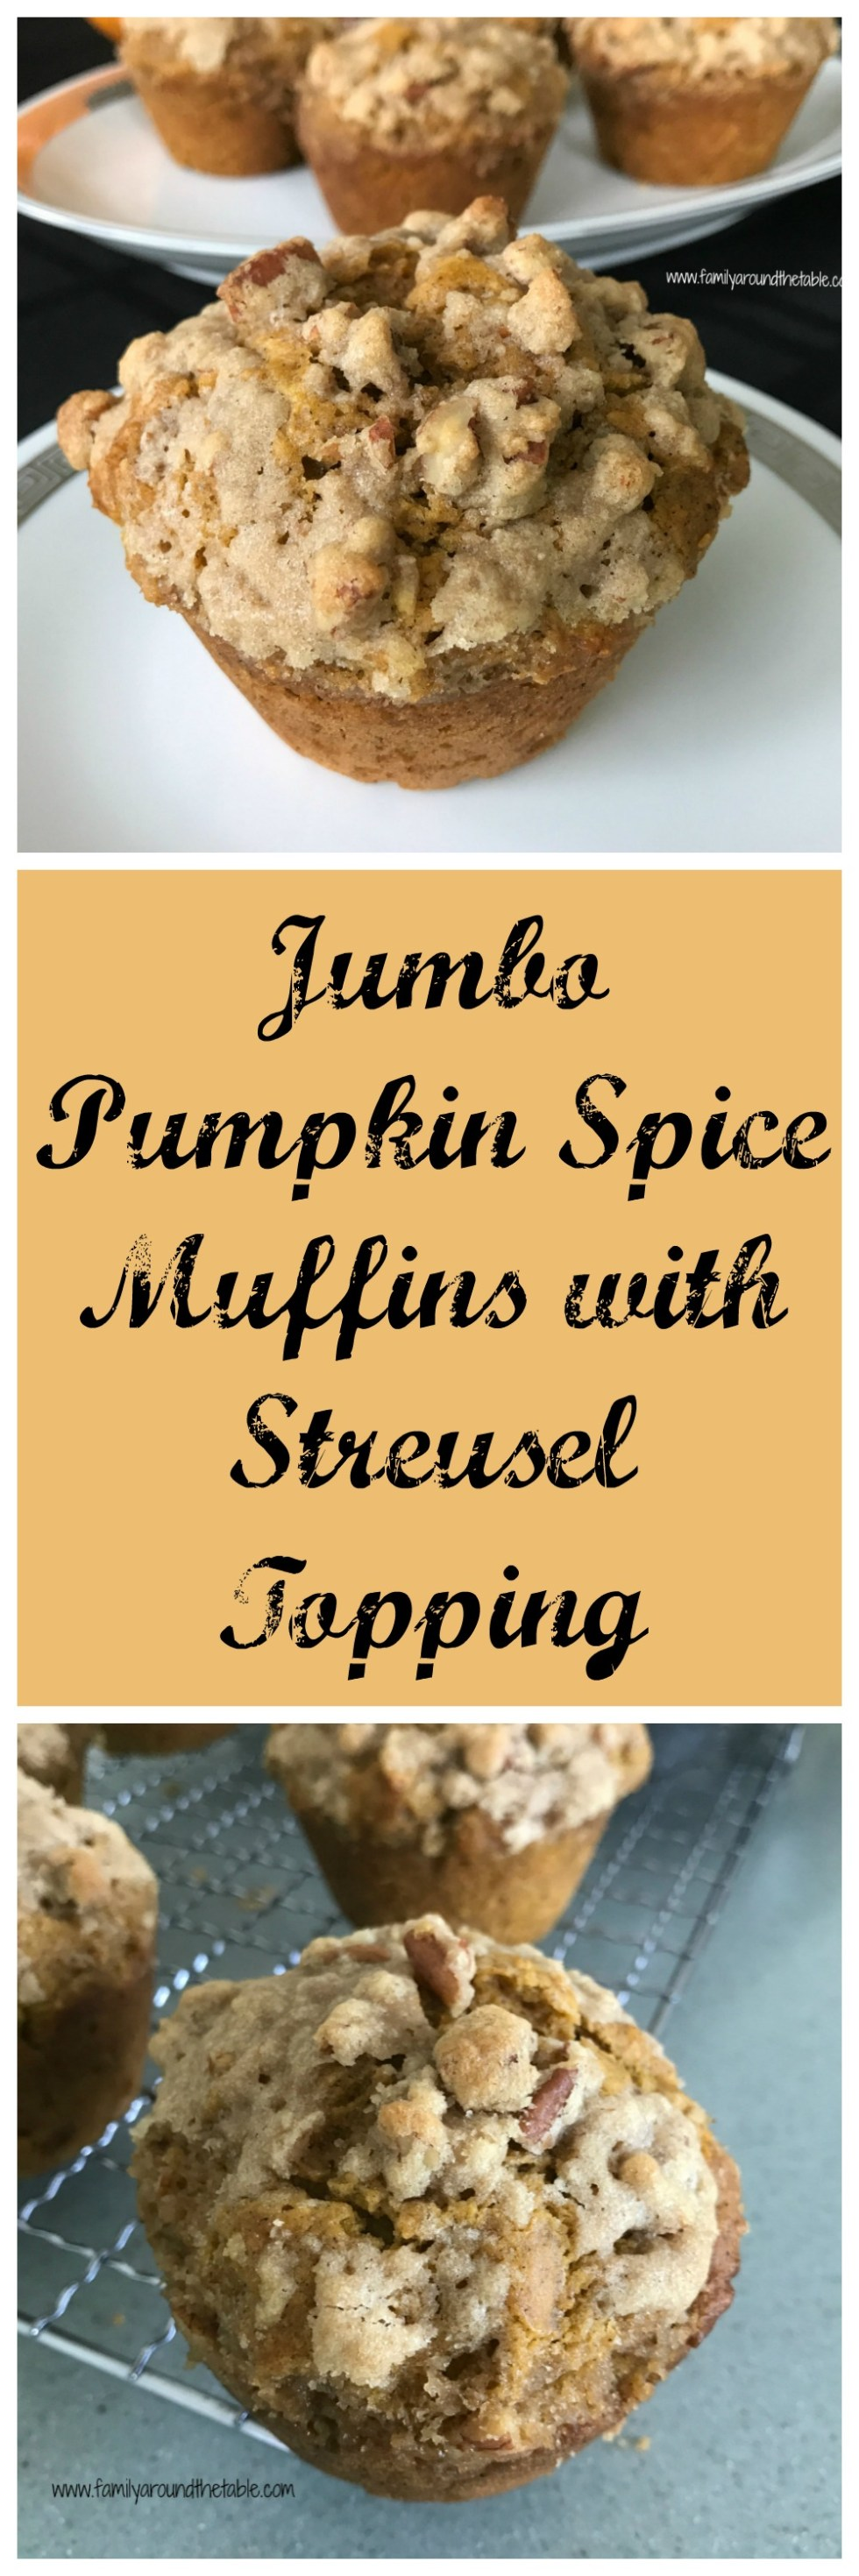 Wake up to Jumbo Pumpkin Spice Muffins with Streusel Topping.